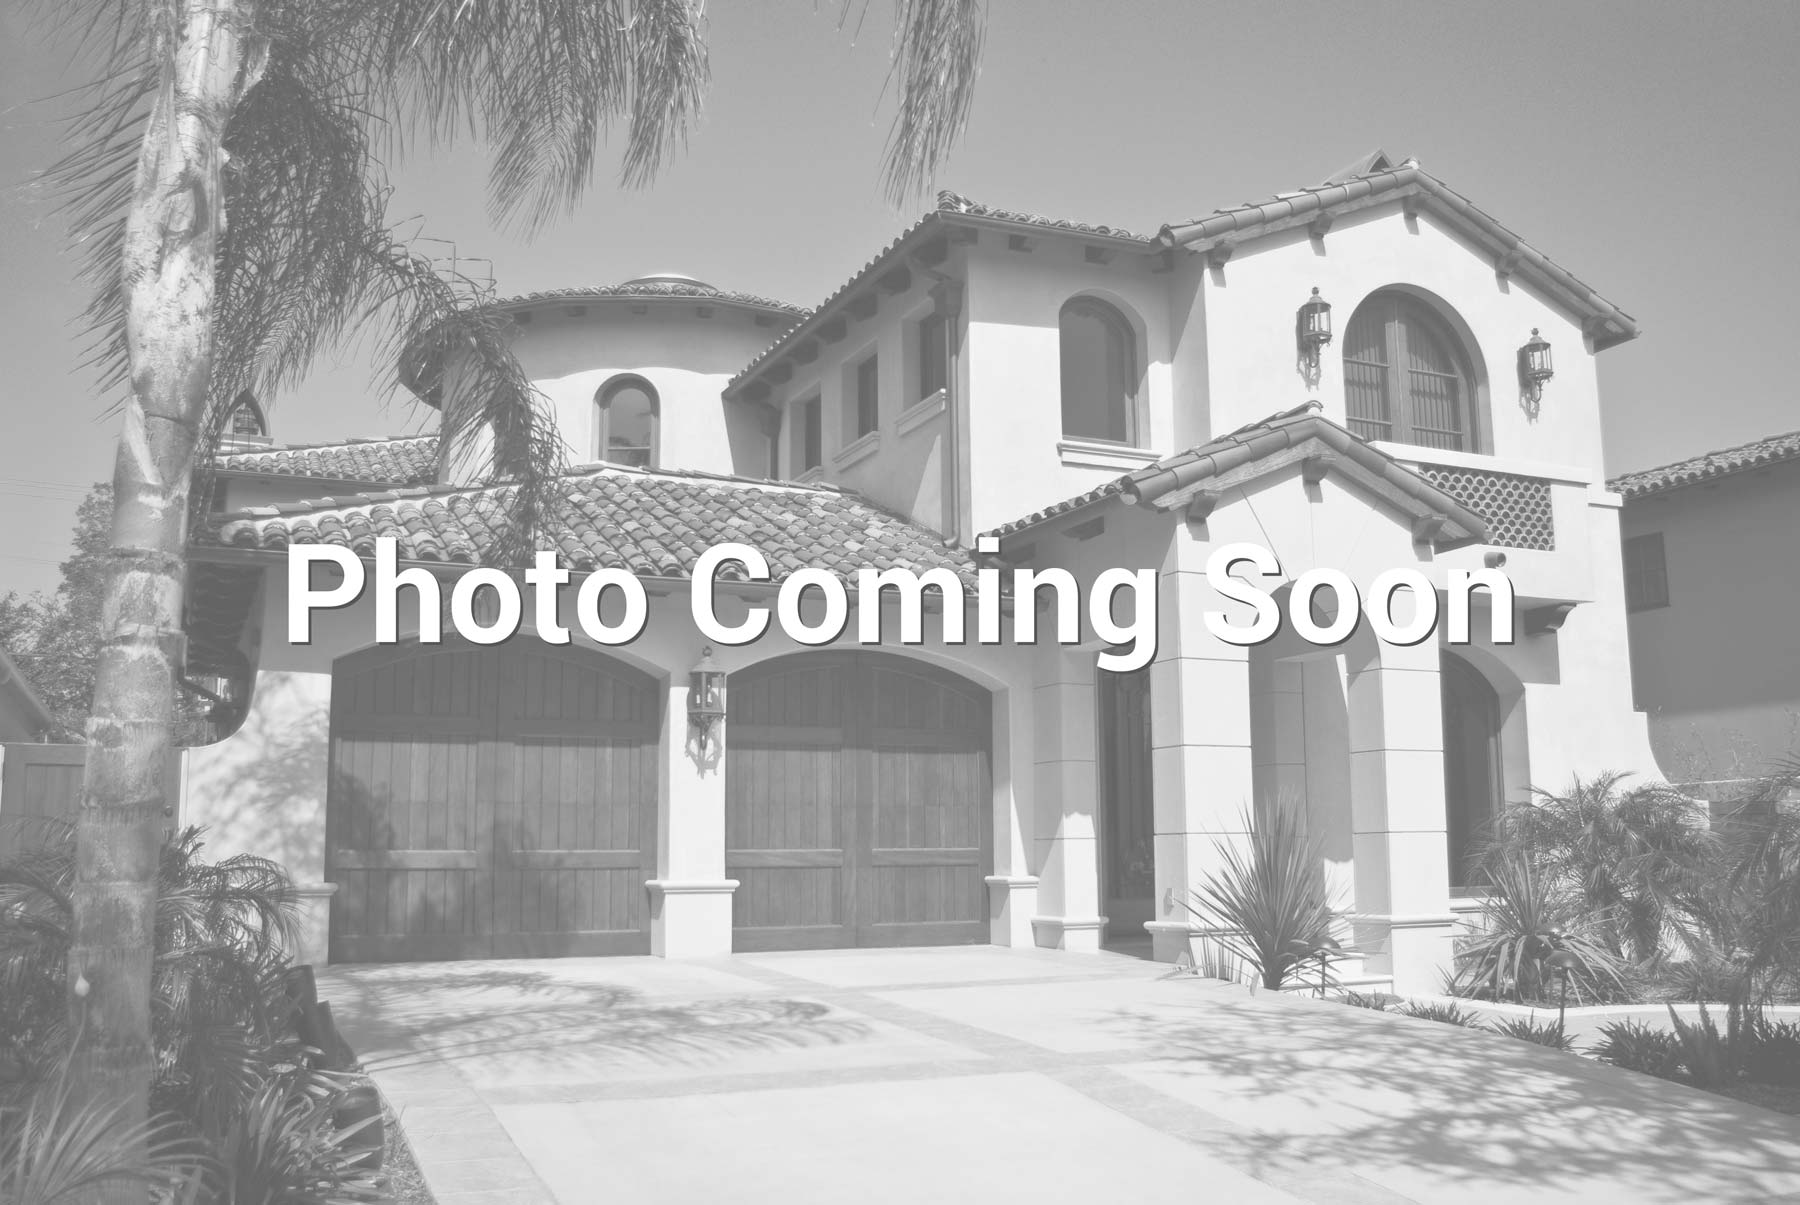 $130,500 - 4Br/2Ba -  for Sale in Bakersfield